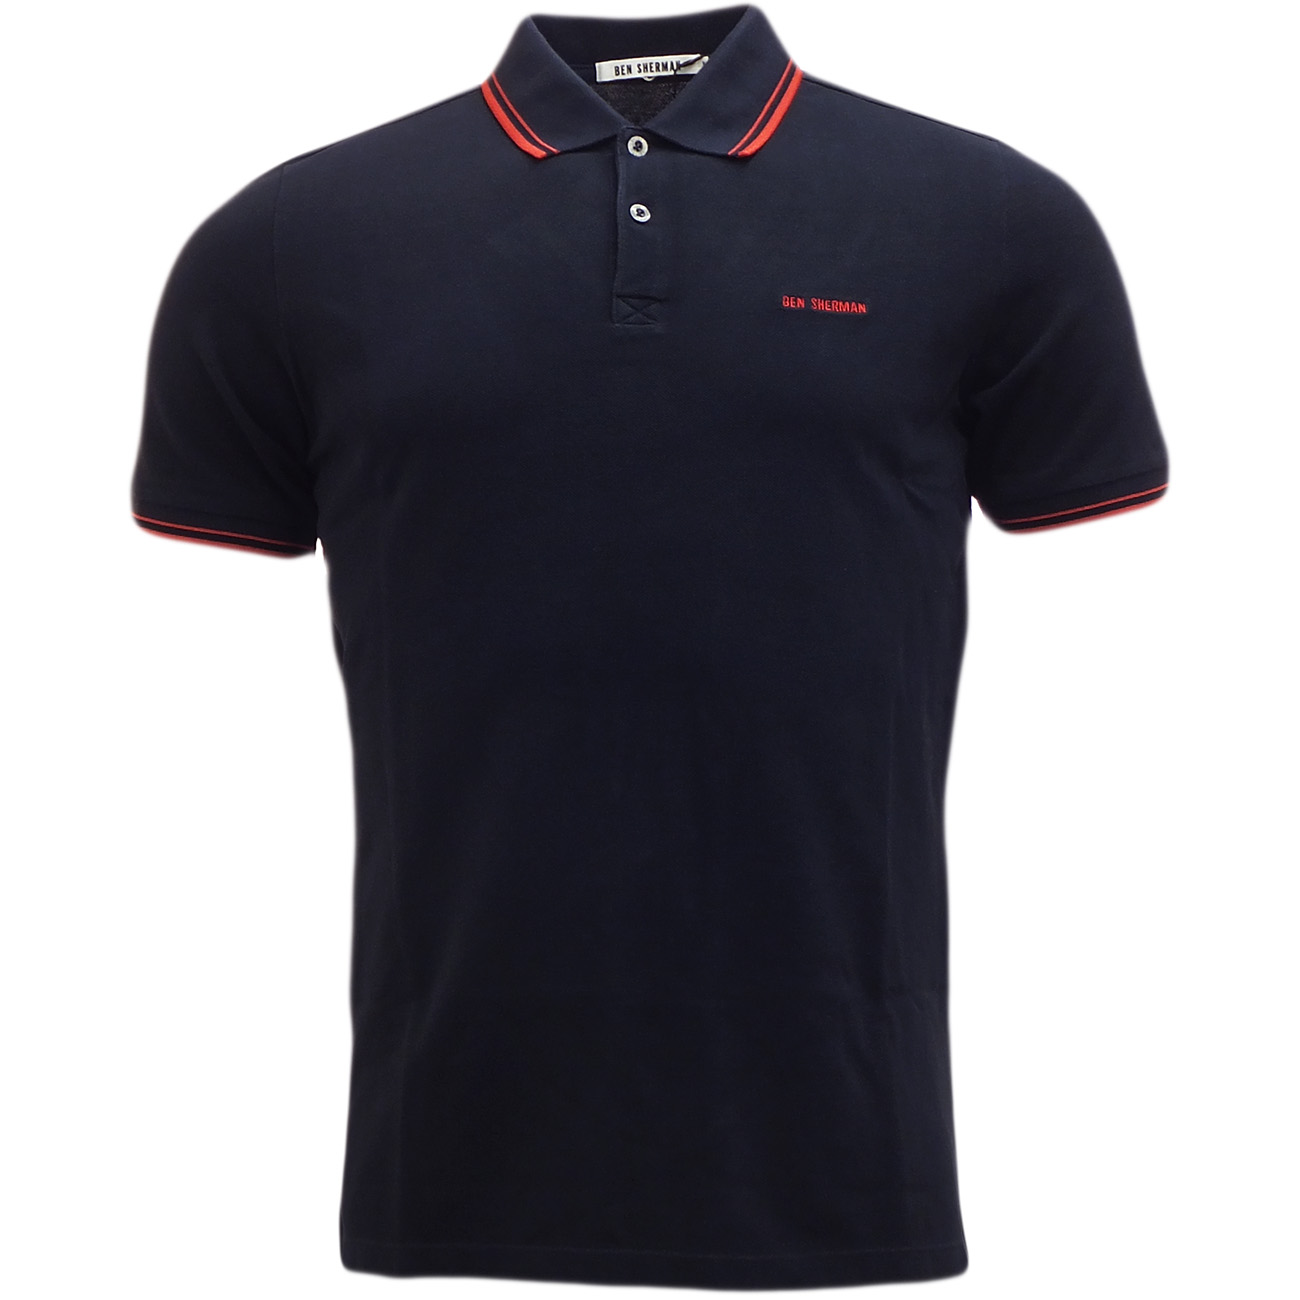 Shop eBay for great deals on Short Sleeve Polo Shirts & Tops for Men. You'll find new or used Short Sleeve Polo Shirts & Tops for Men on eBay. Free shipping on selected items.